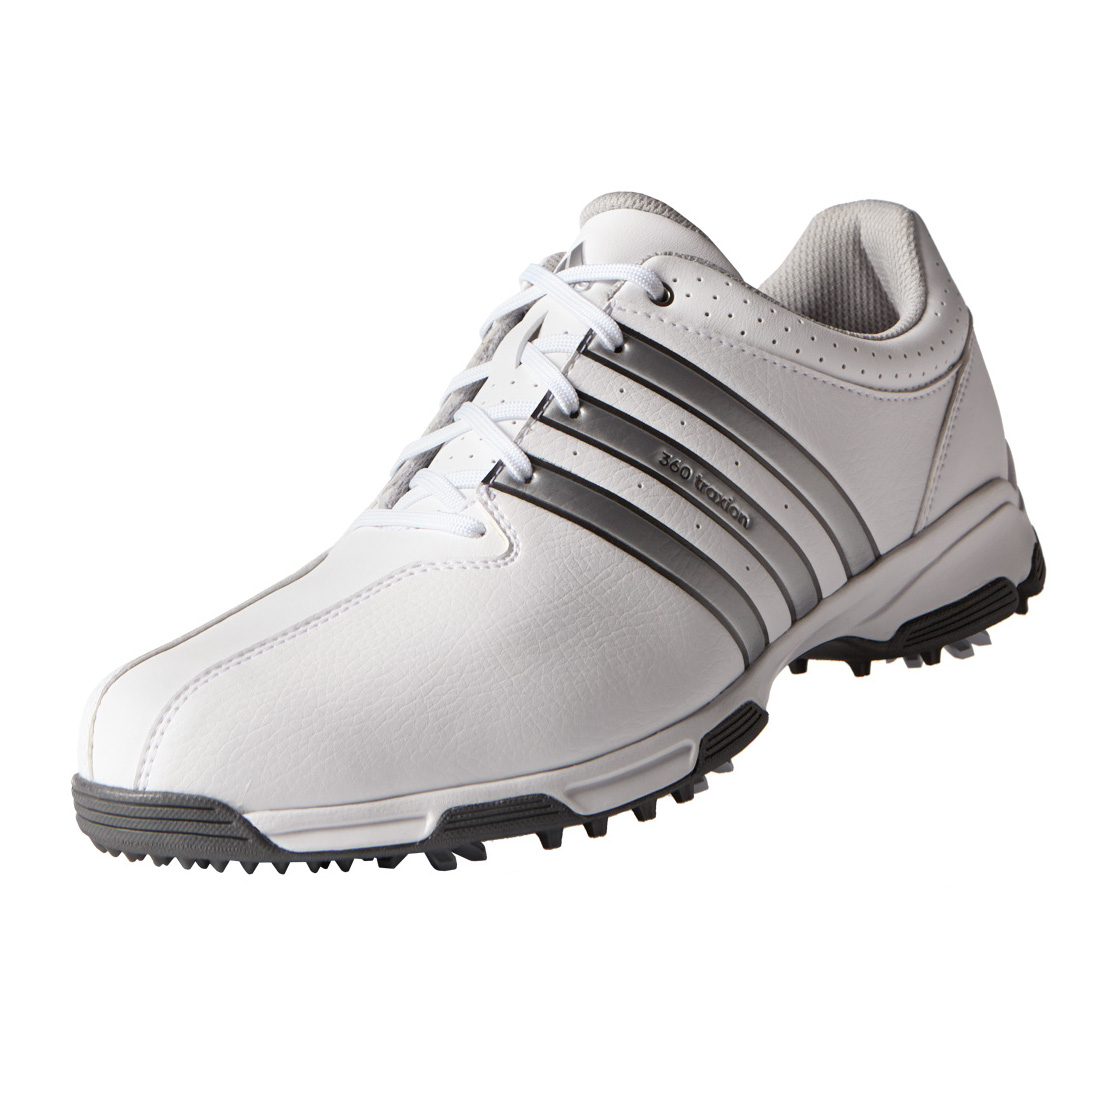 Mens Size 12 Golf Shoes Images Platform